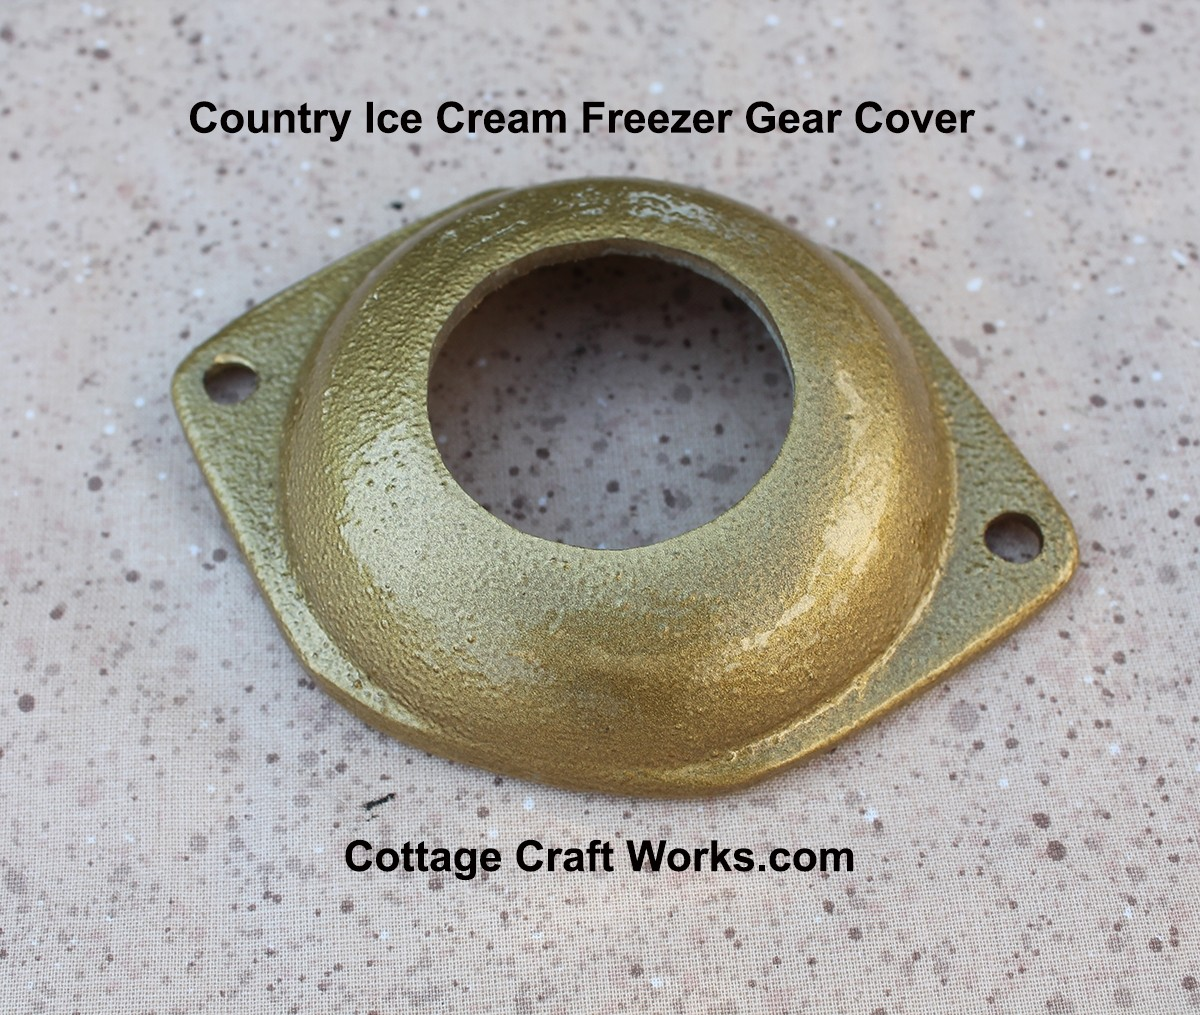 Country Freezer Gear Cover